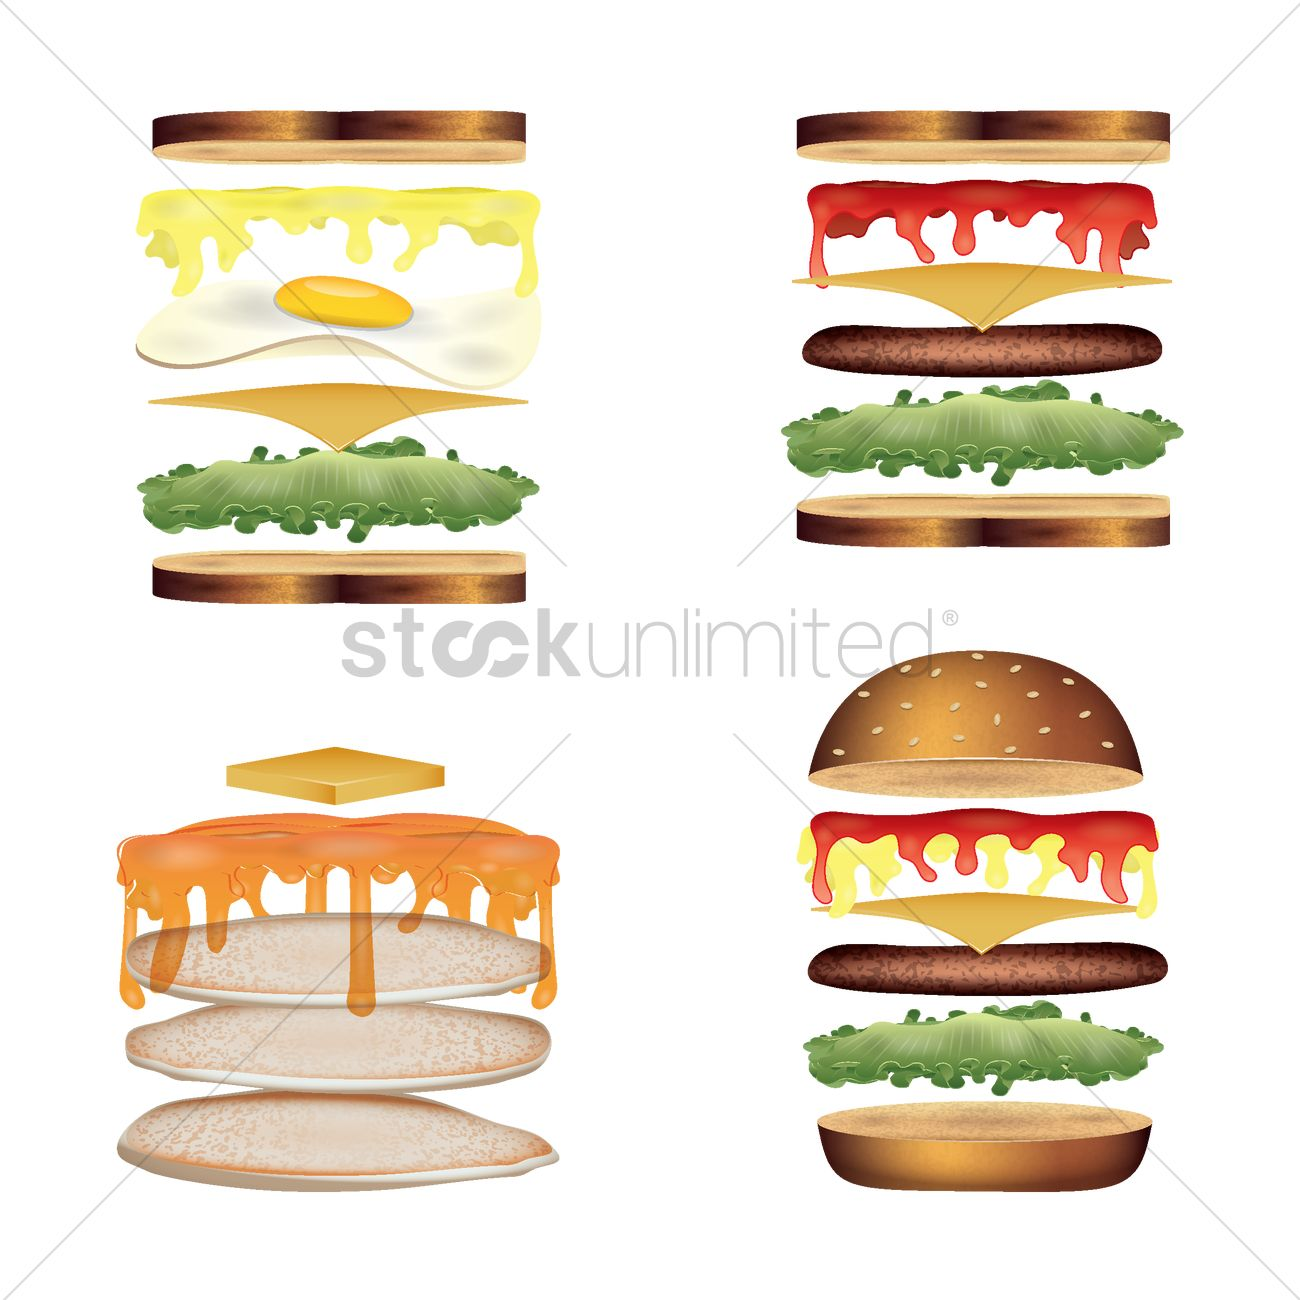 Food deconstruction collection Vector Image.